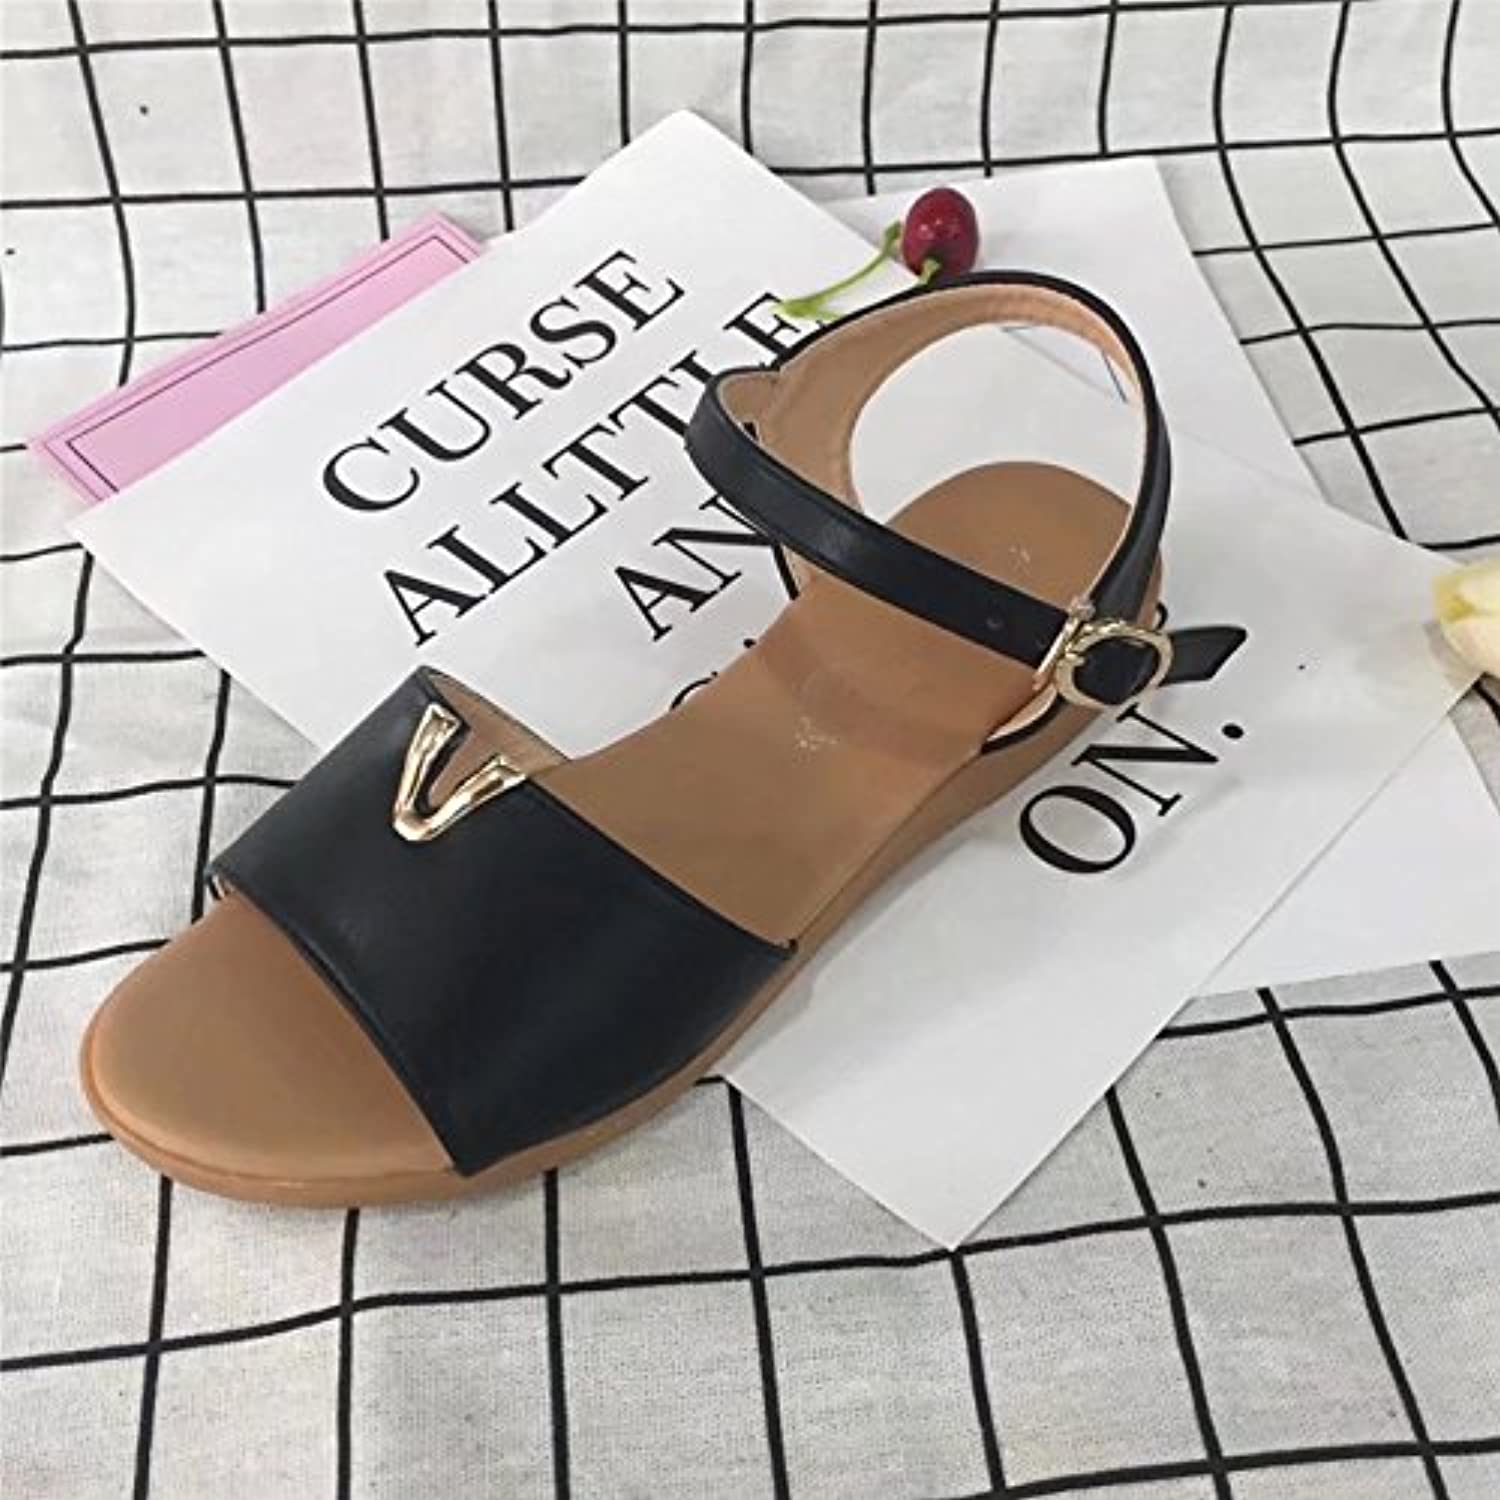 LHJY New Sandals Female Sandals Low Beach Sandals Rome shoes Fashion Casual Students